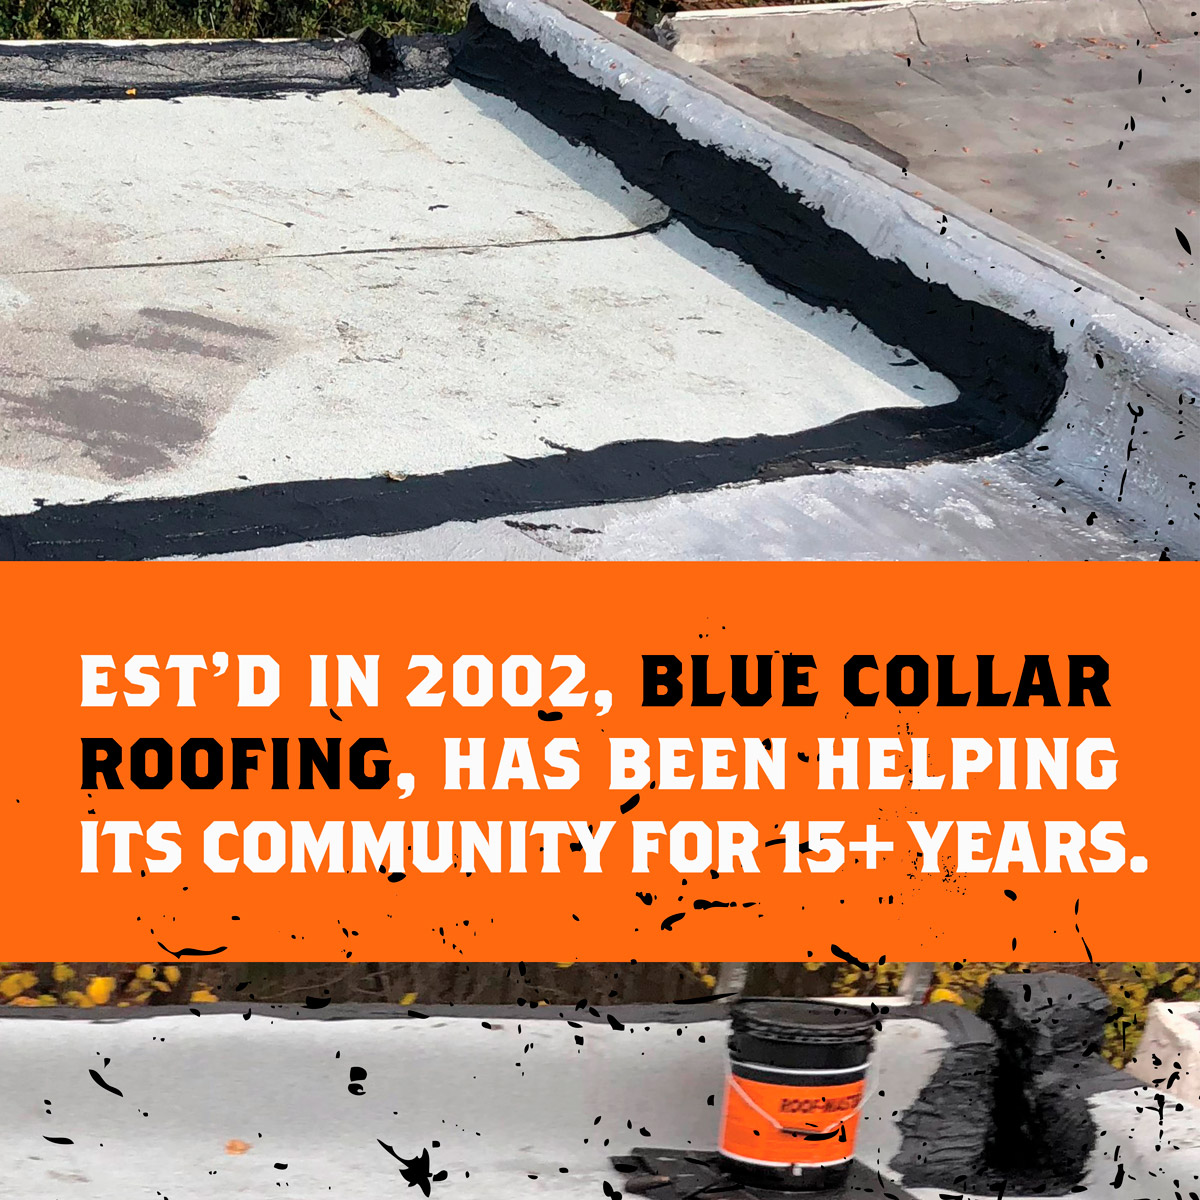 Established in 2002, Blue Collar Roofing, has been Helping its Community for 15+ Years